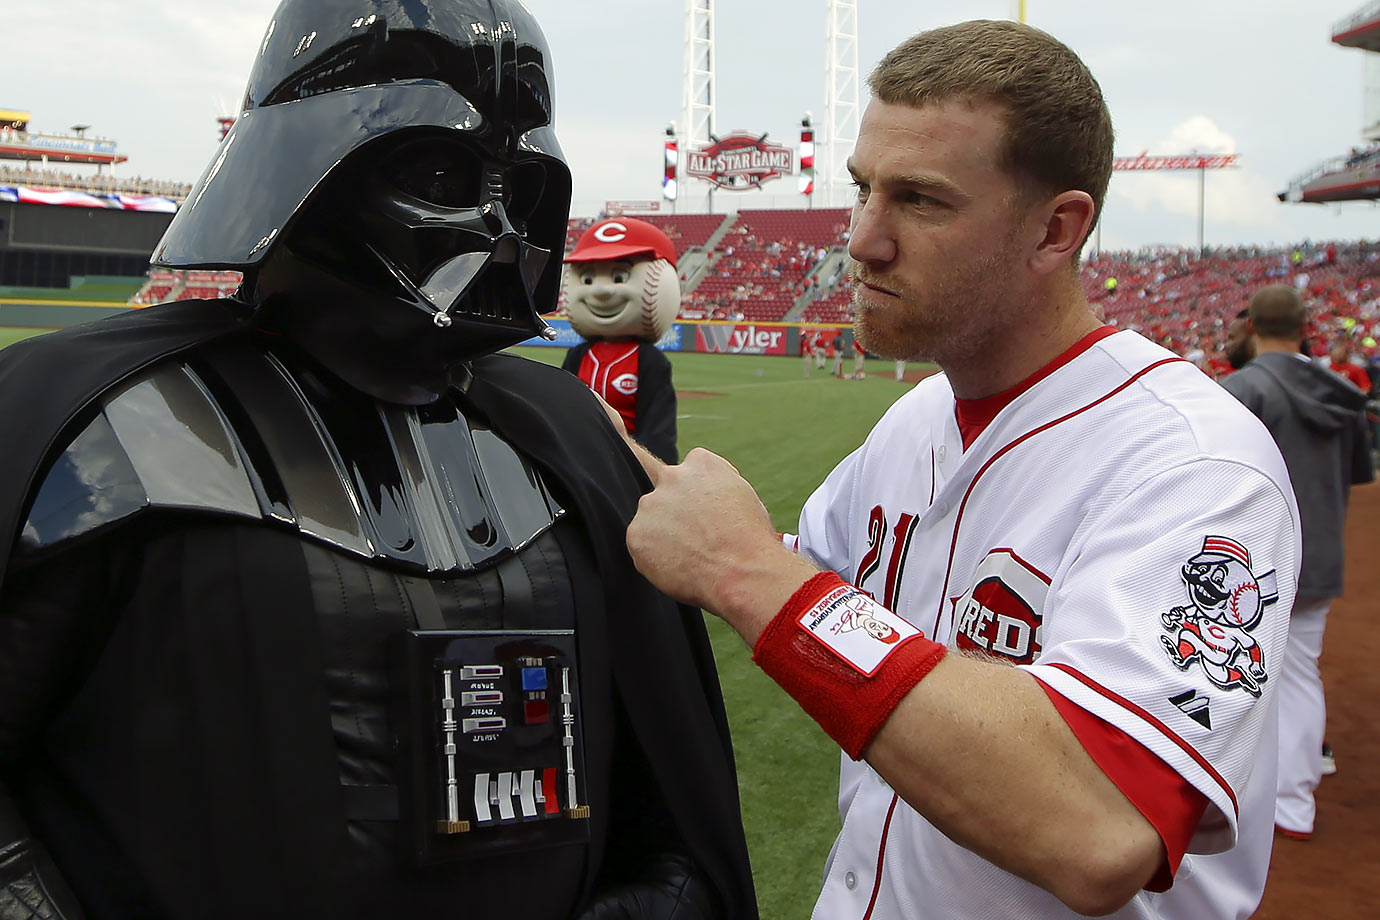 Todd Frazier poses with Darth Vader before the game against the San Francisco Giants on May 15, 2015 at Great American Ball Park in Cincinnati, Ohio.